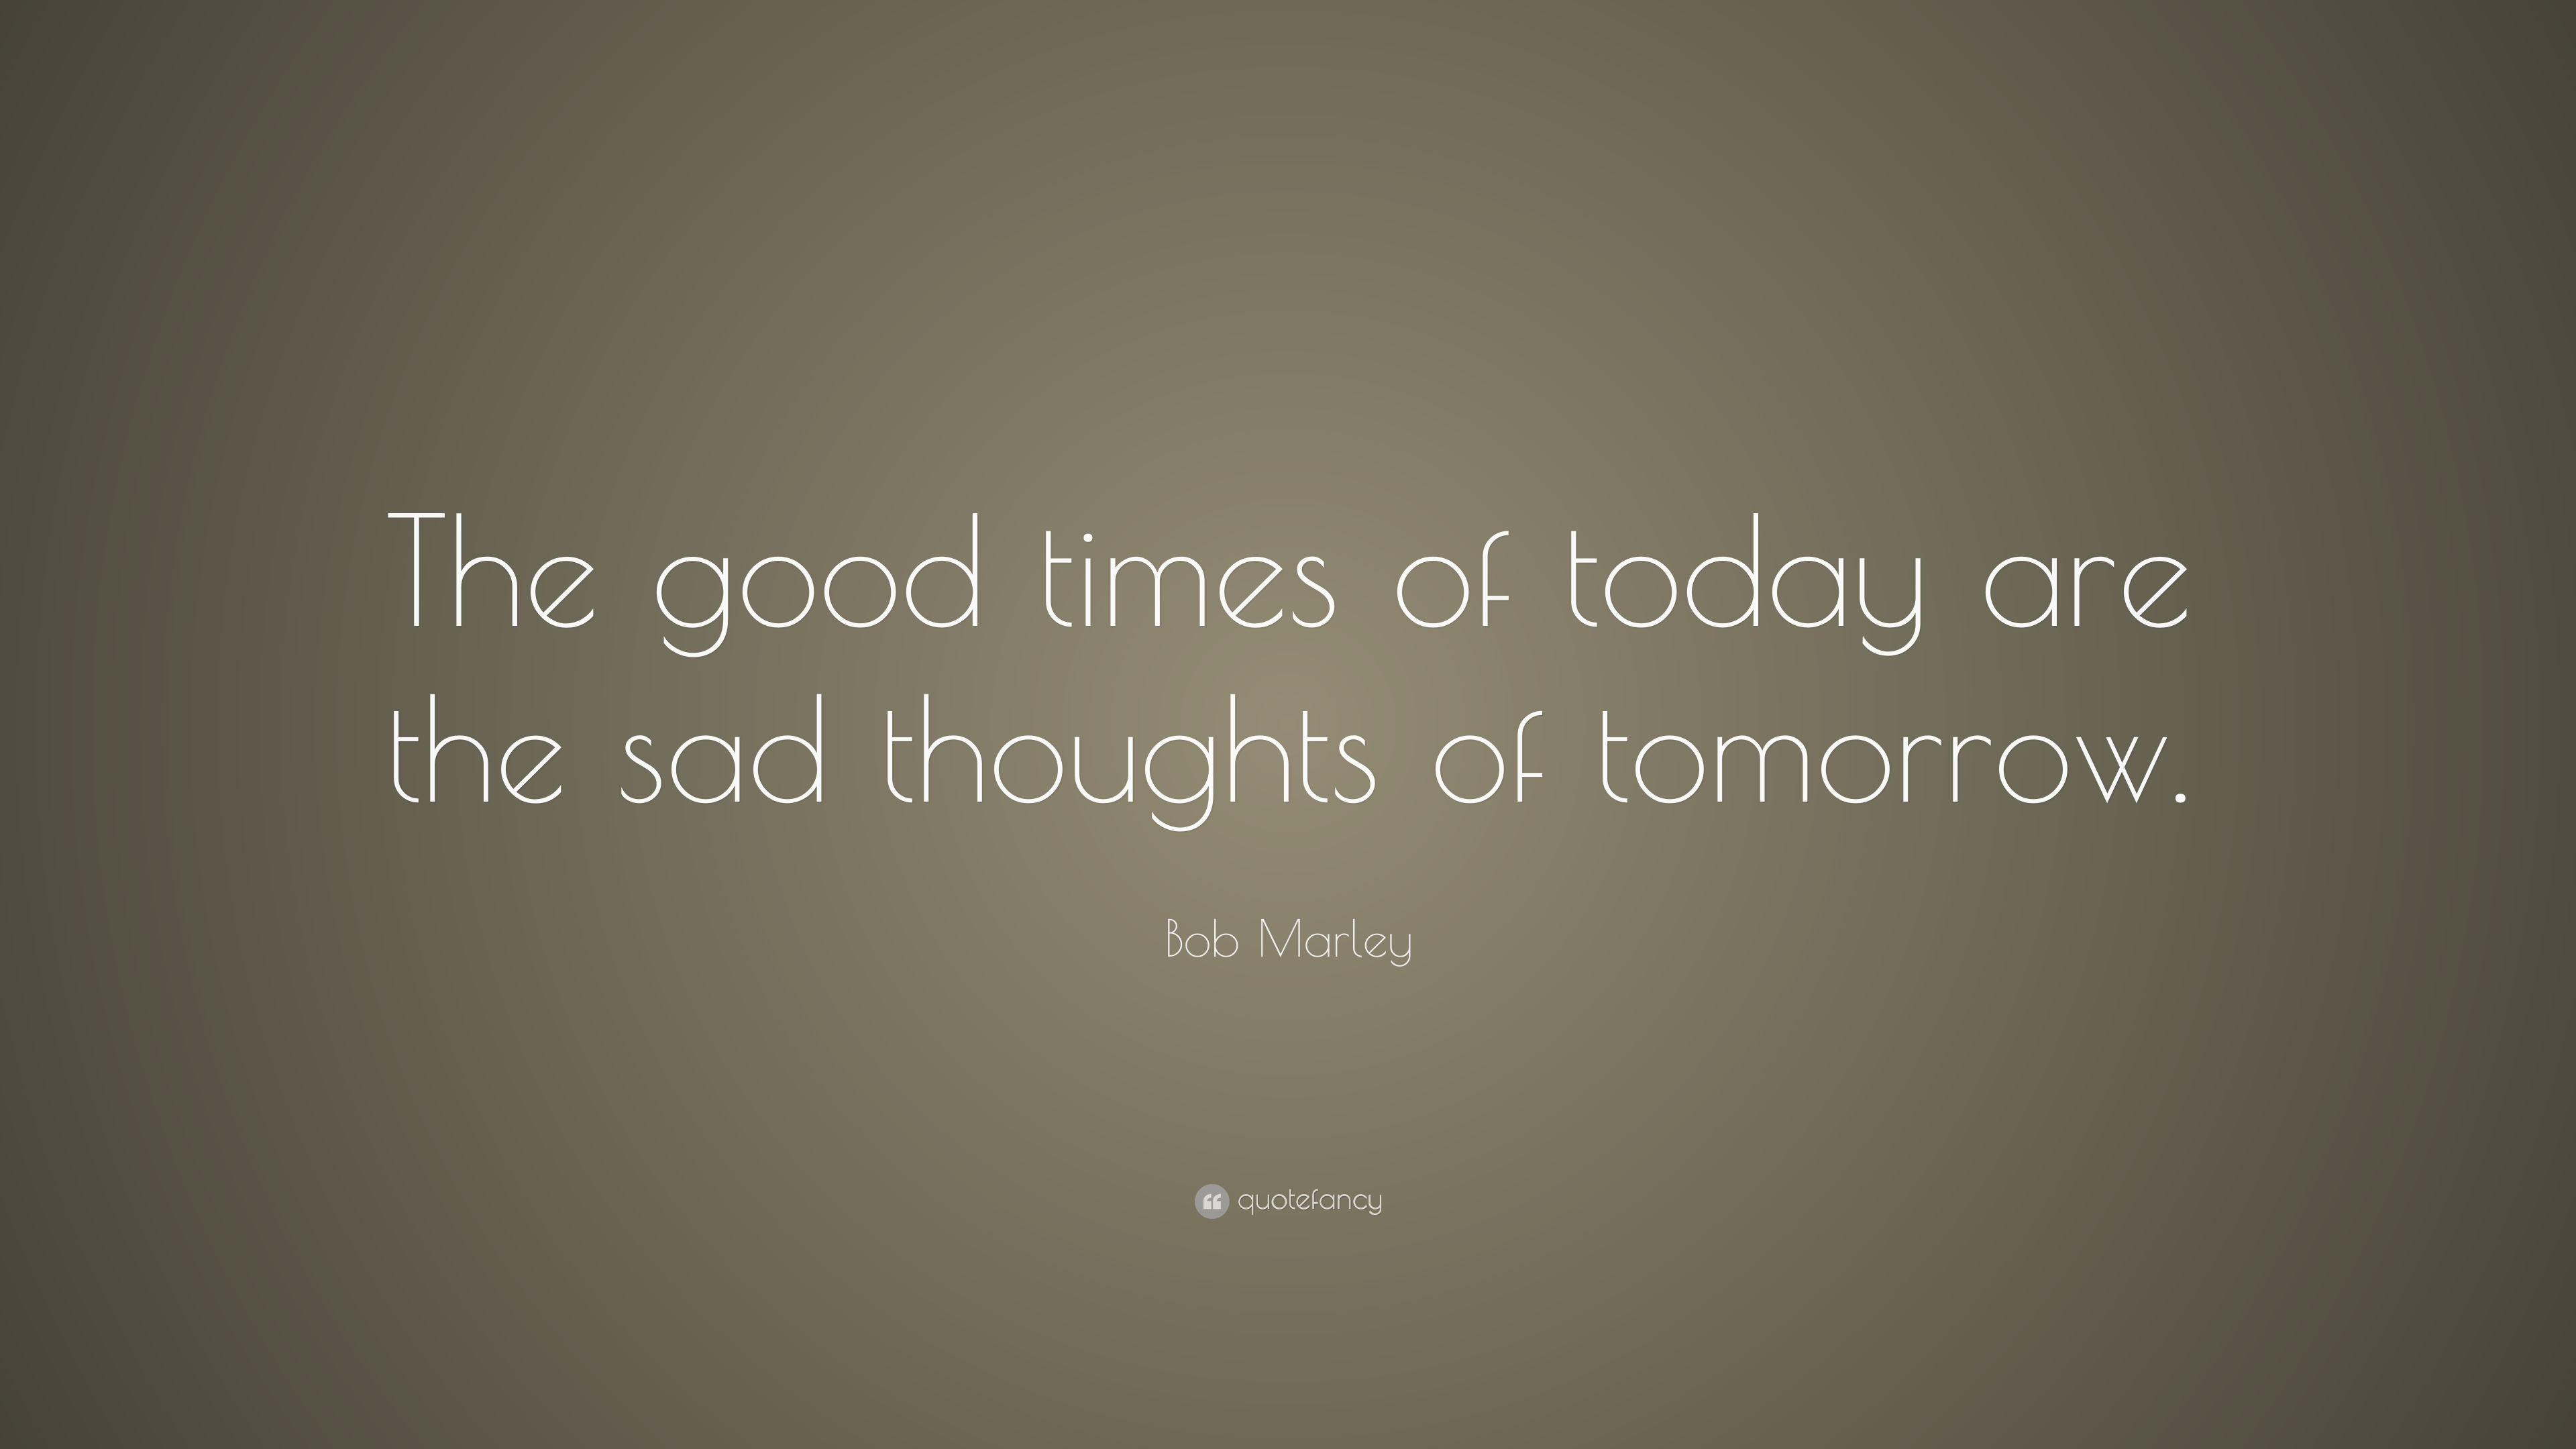 bob marley quote the good times of today are the sad